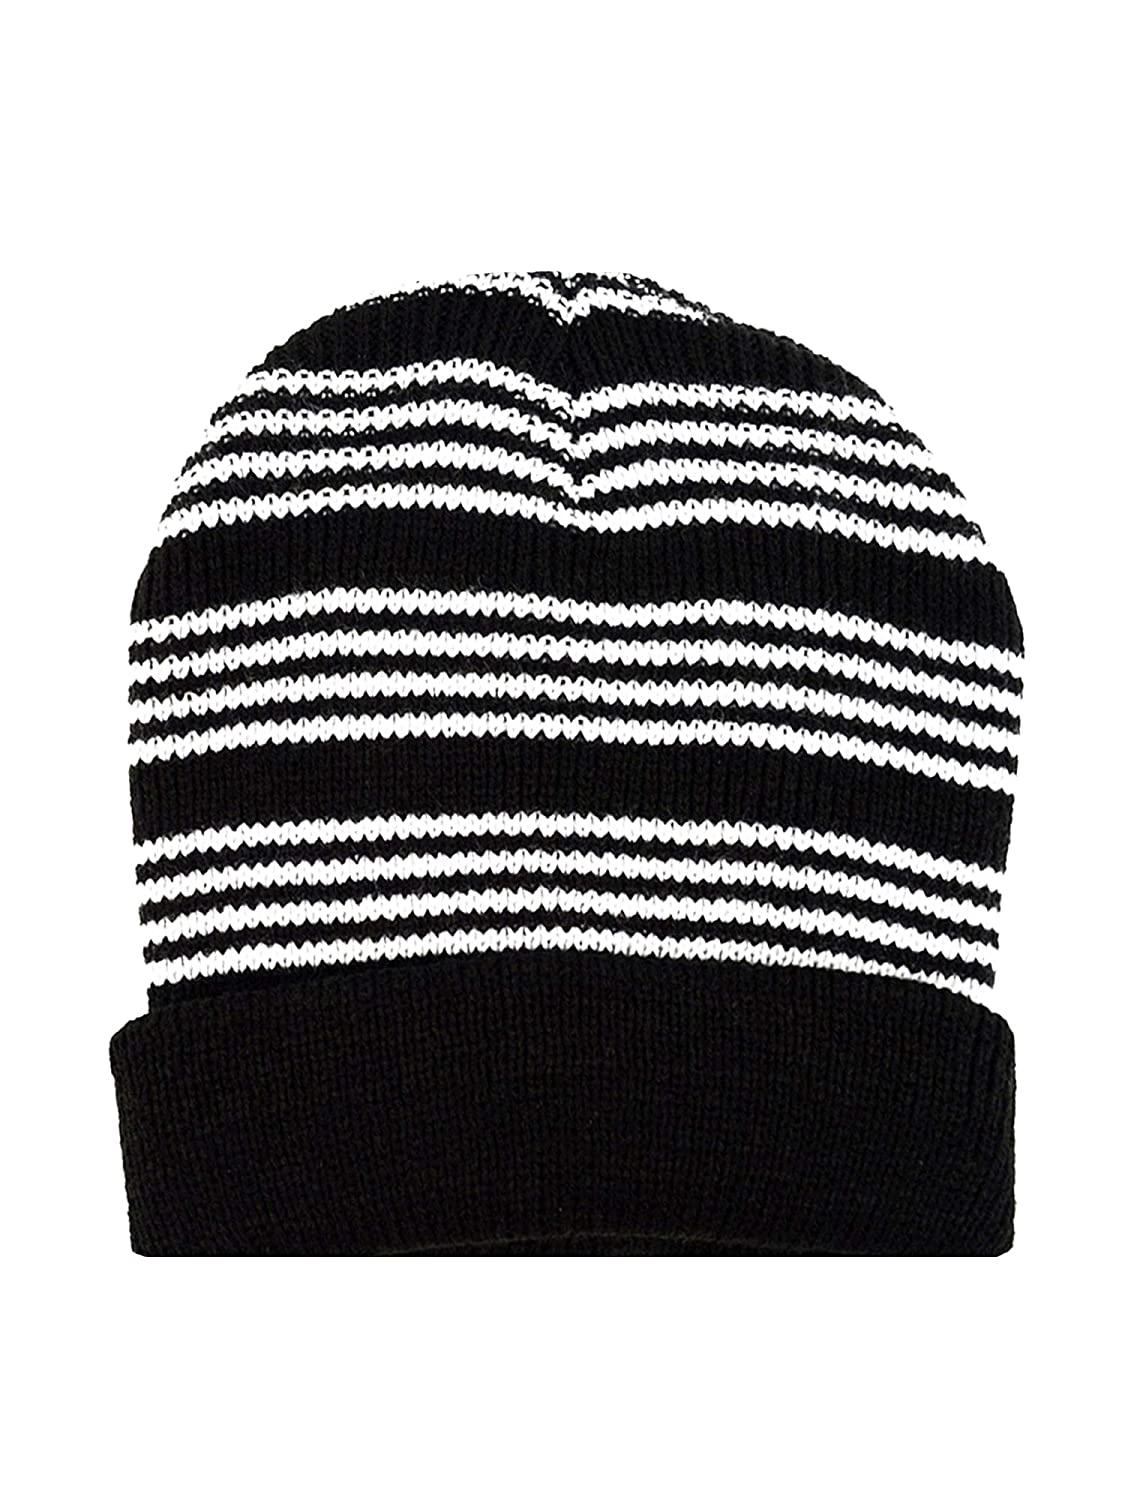 Mens Black /& White Stripe Winter Knit Hat /& Scarf Set